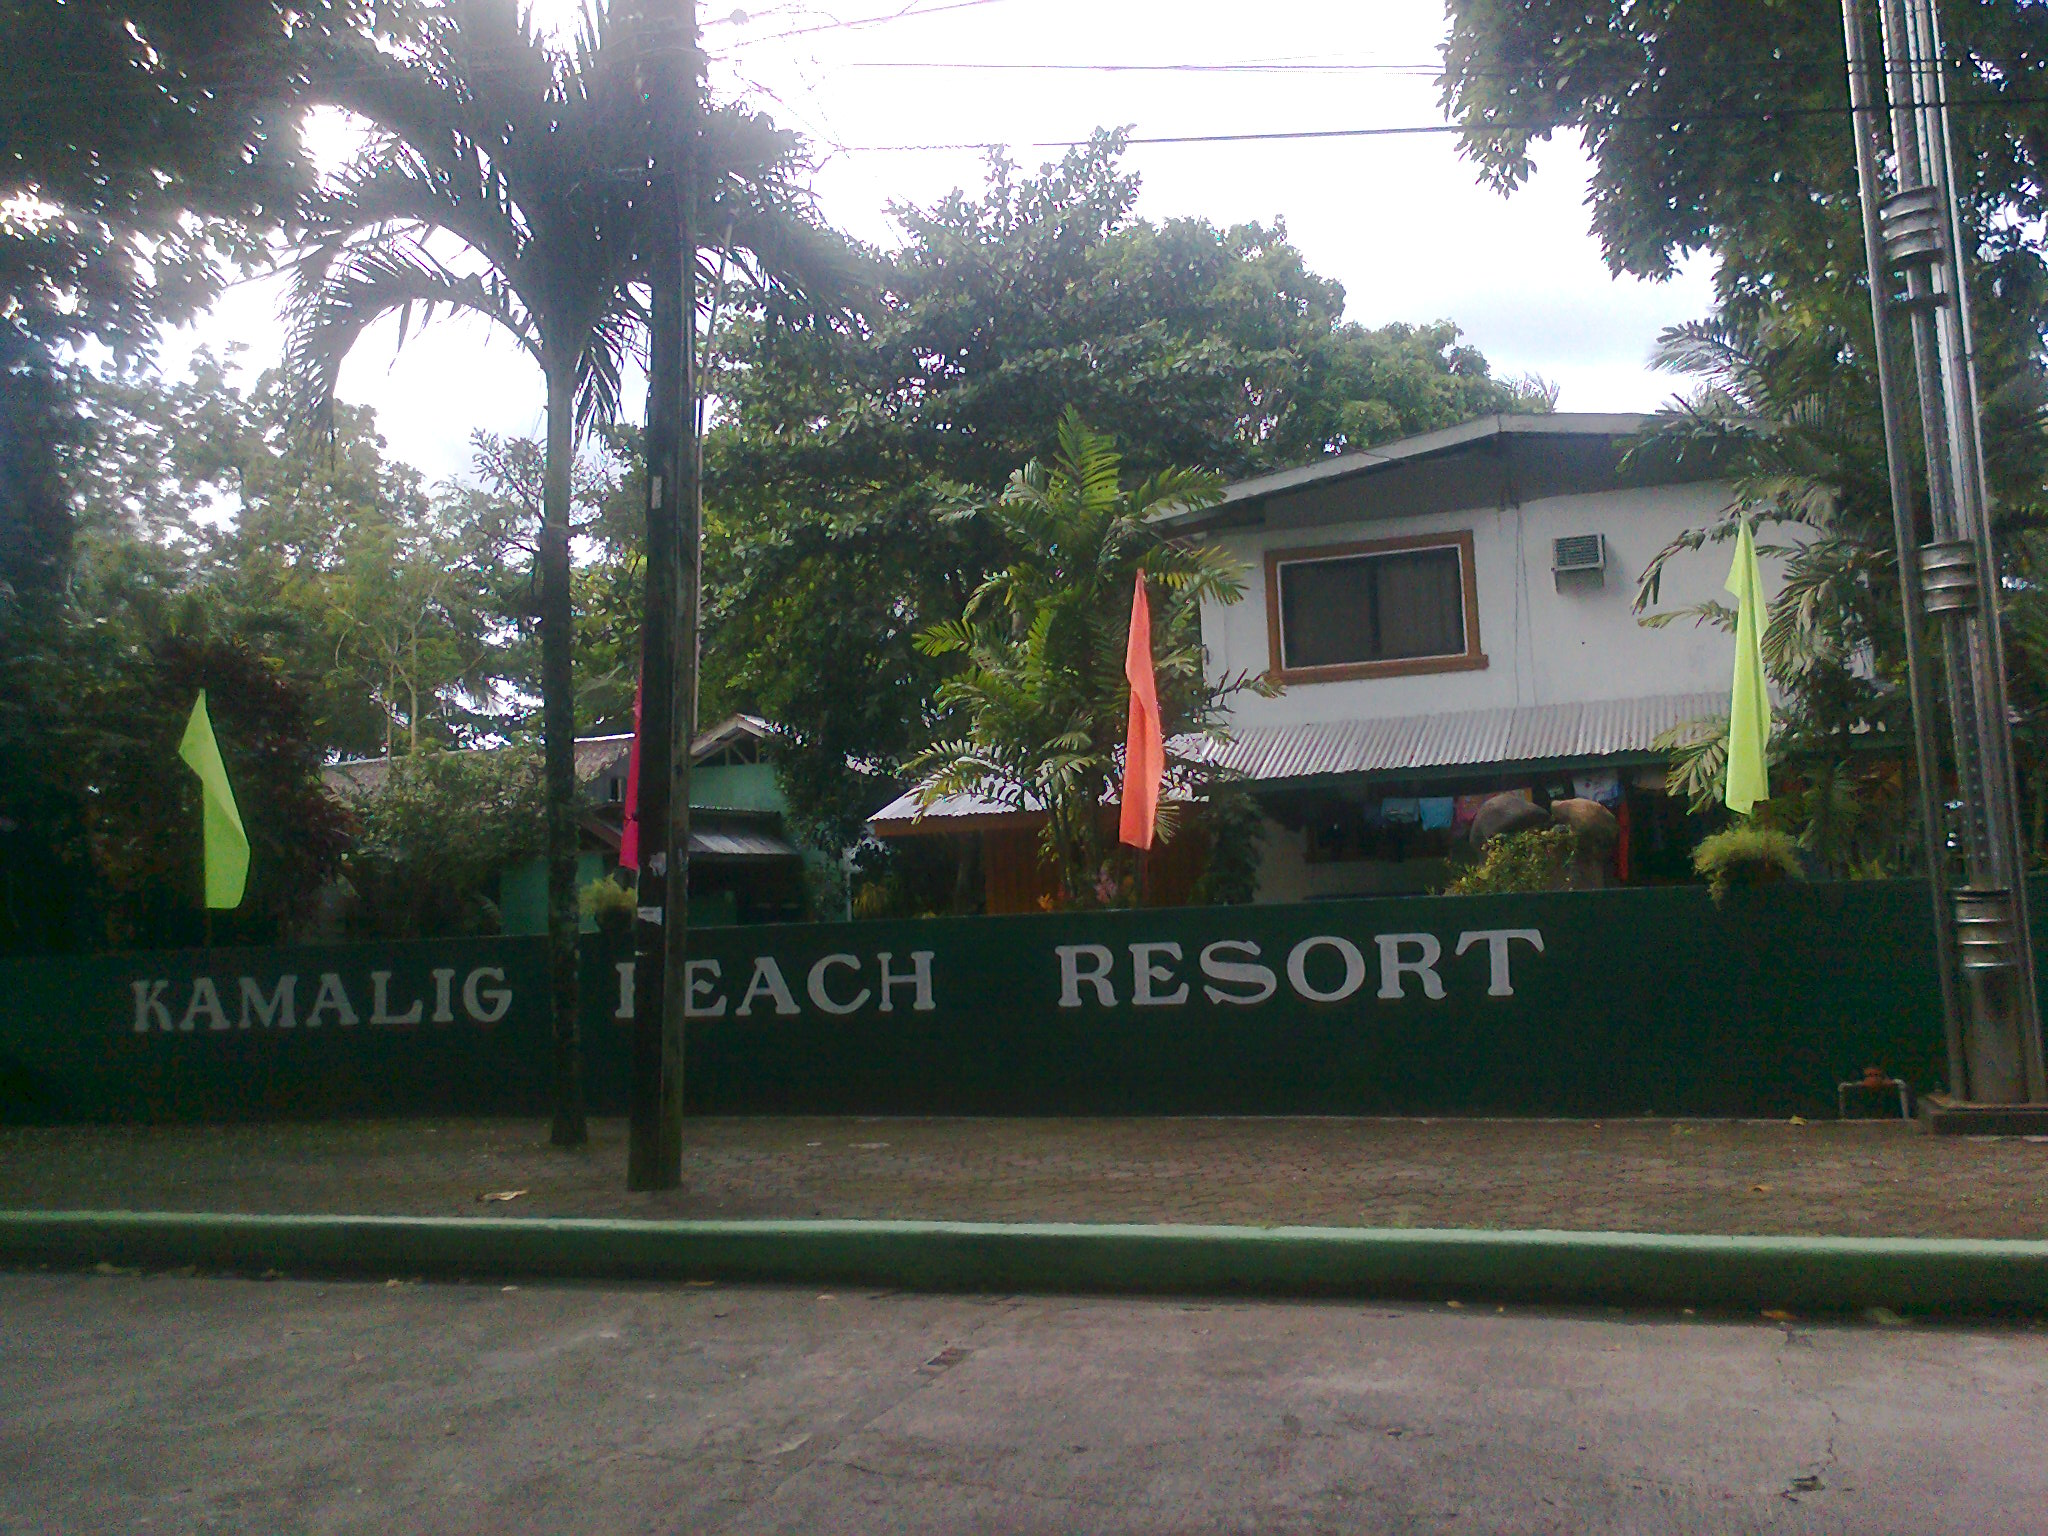 Kamalig Beach Resort